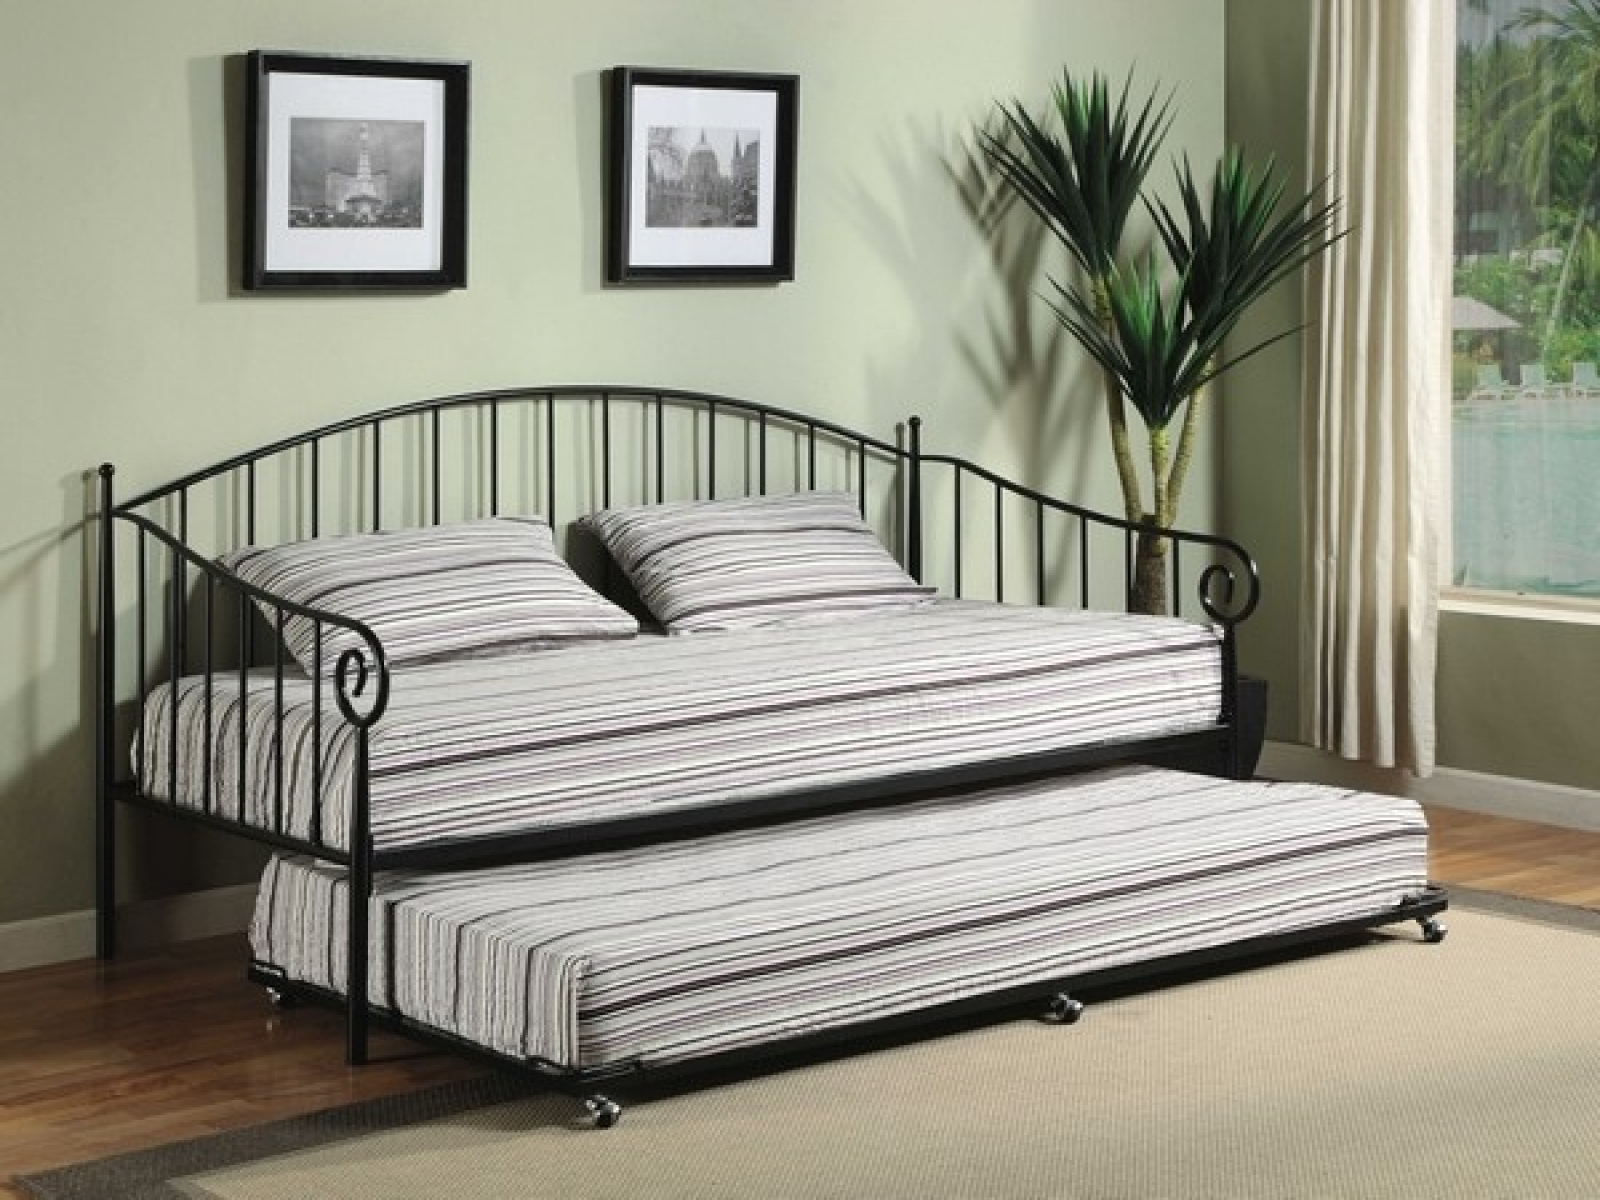 Room Decoration For Metal Bed